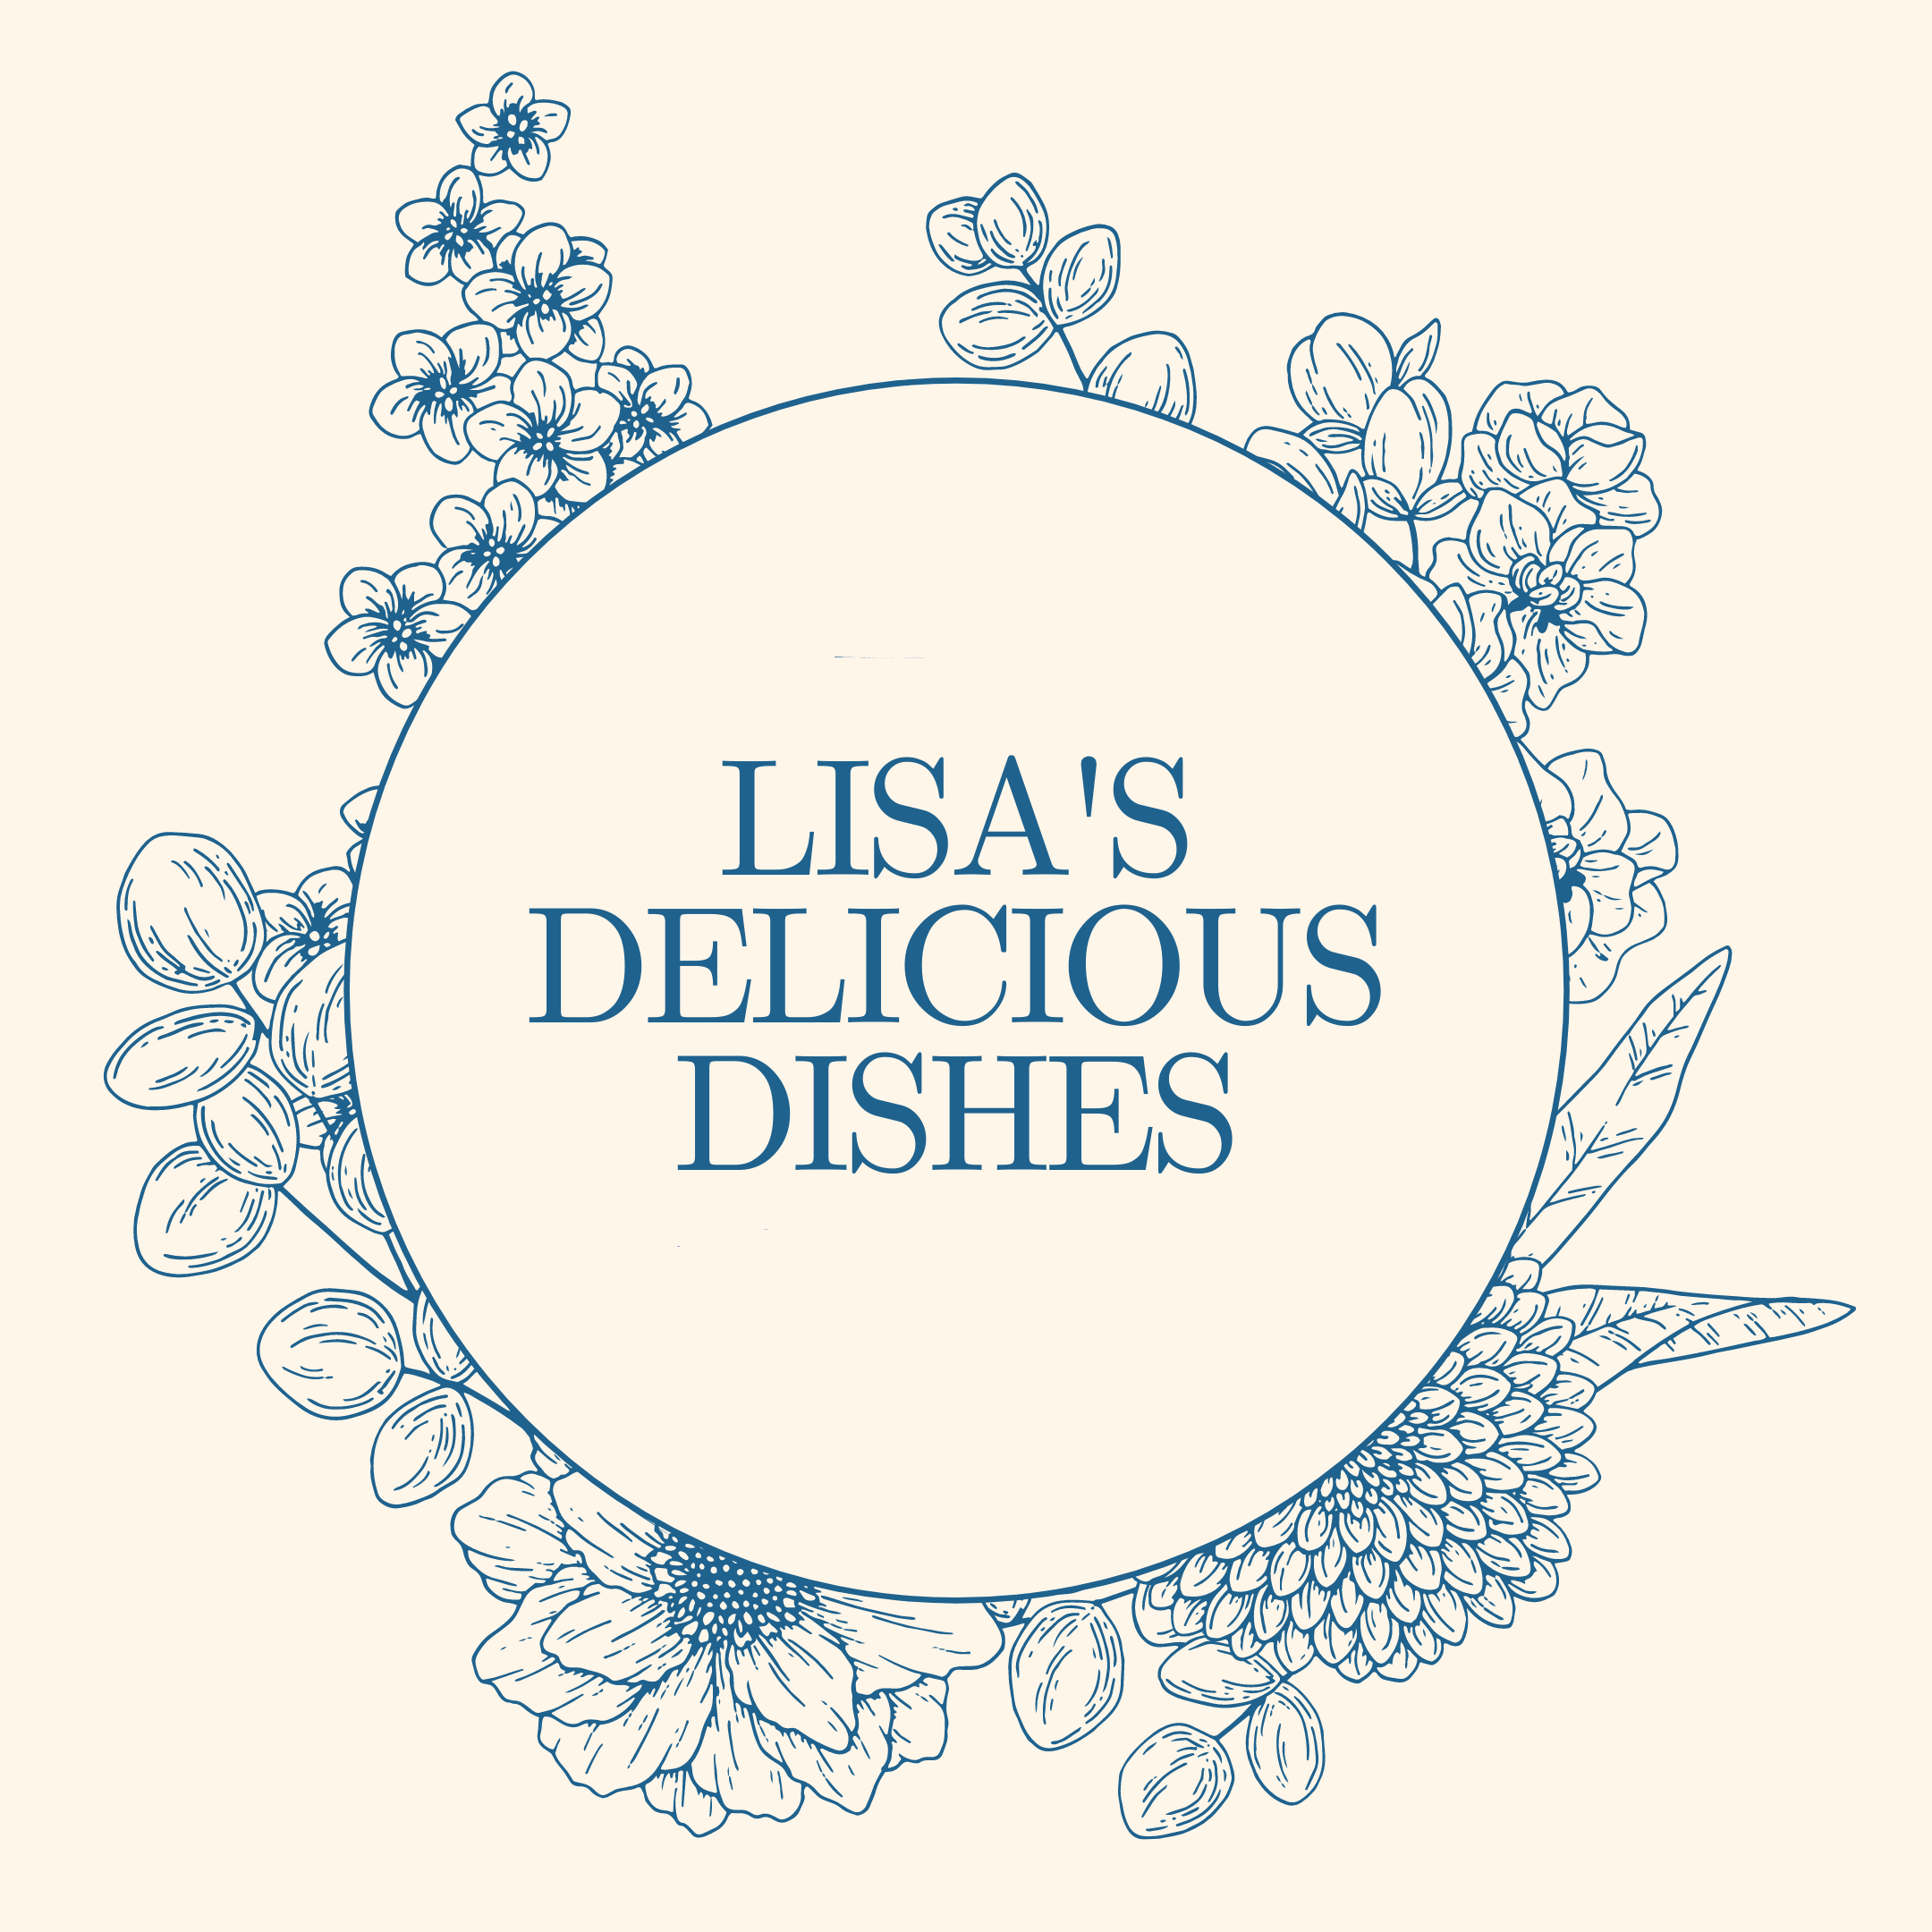 Lis's Delicious Dishes